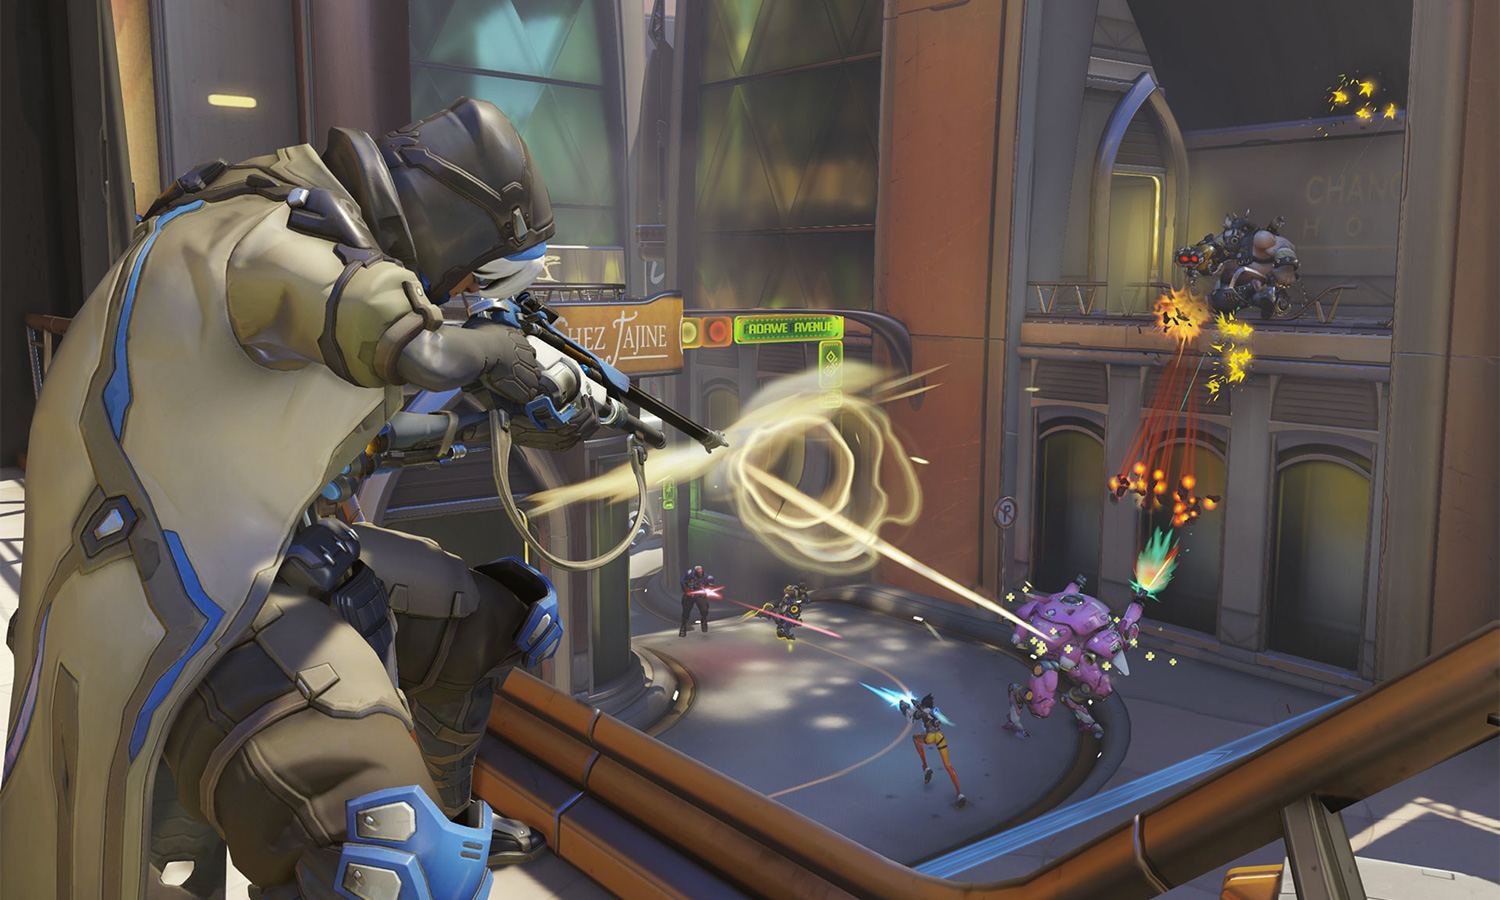 17 Essential Overwatch Tips to Step Up Your Game | Tom's Guide